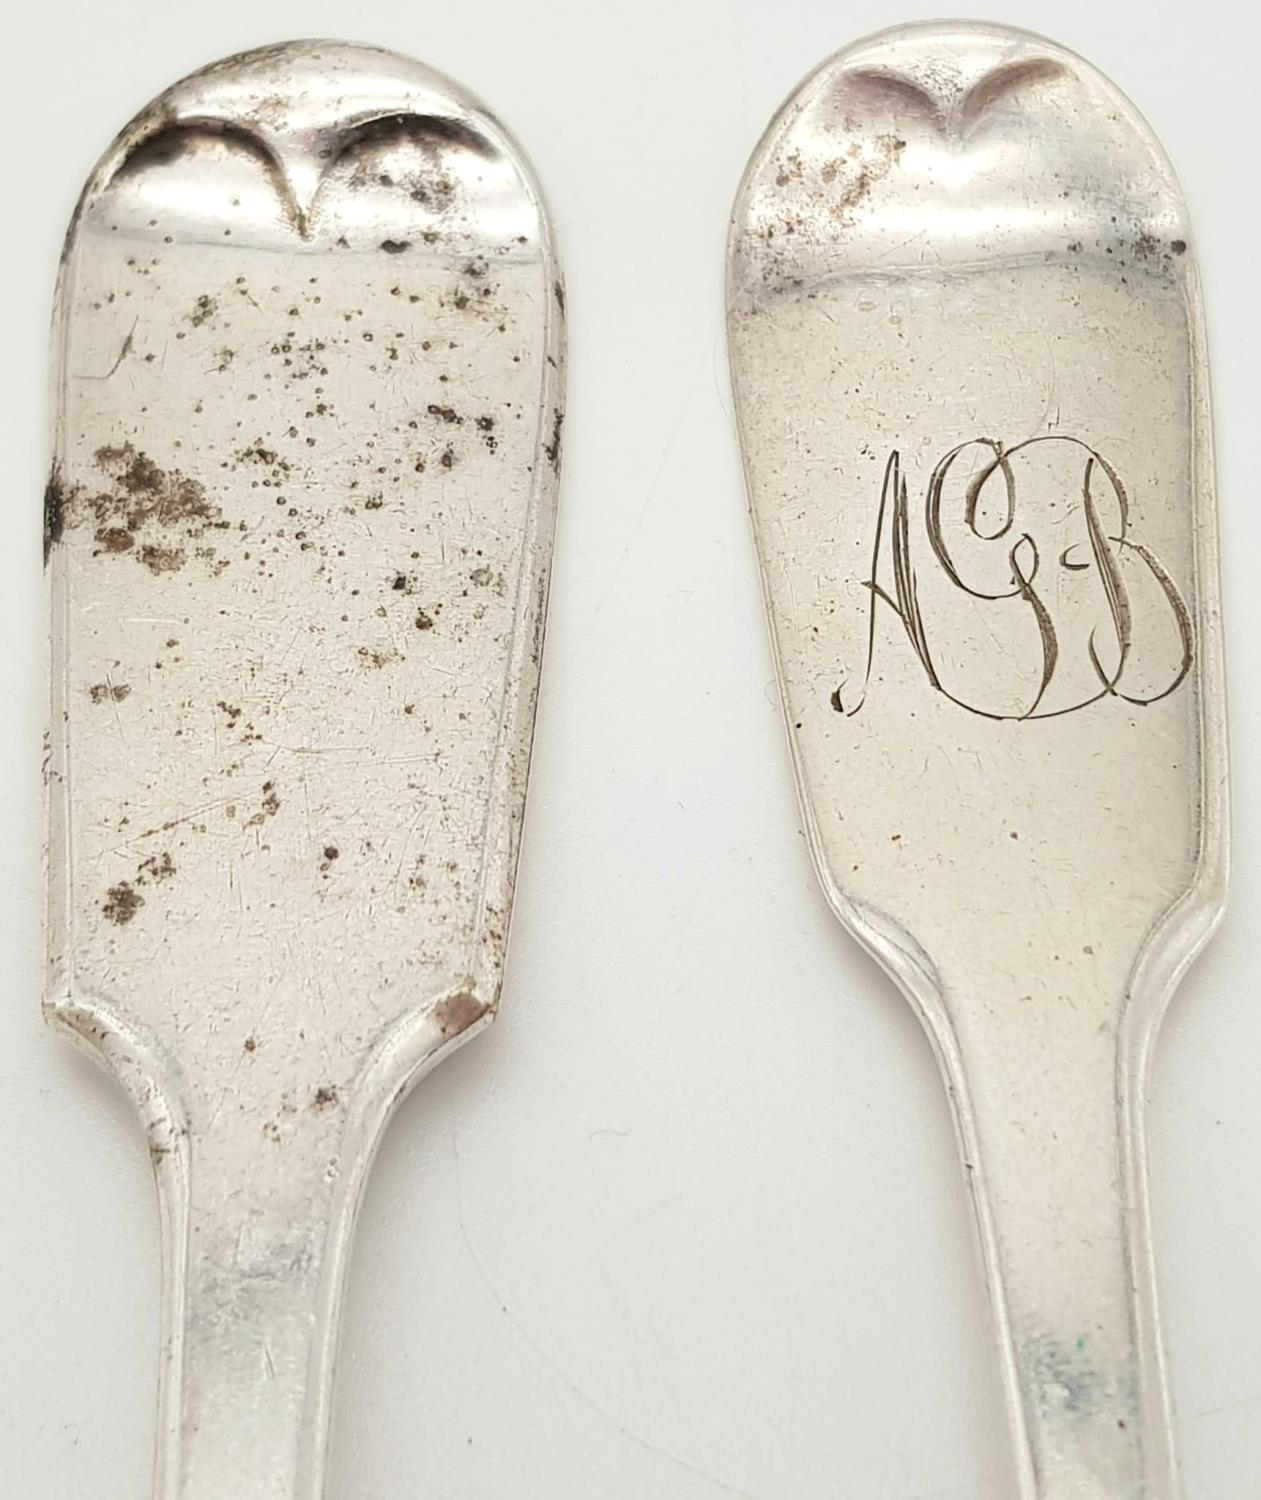 2x Victorian monogramed forks plus fish slide (3) Total weight 266.8g - Image 5 of 5